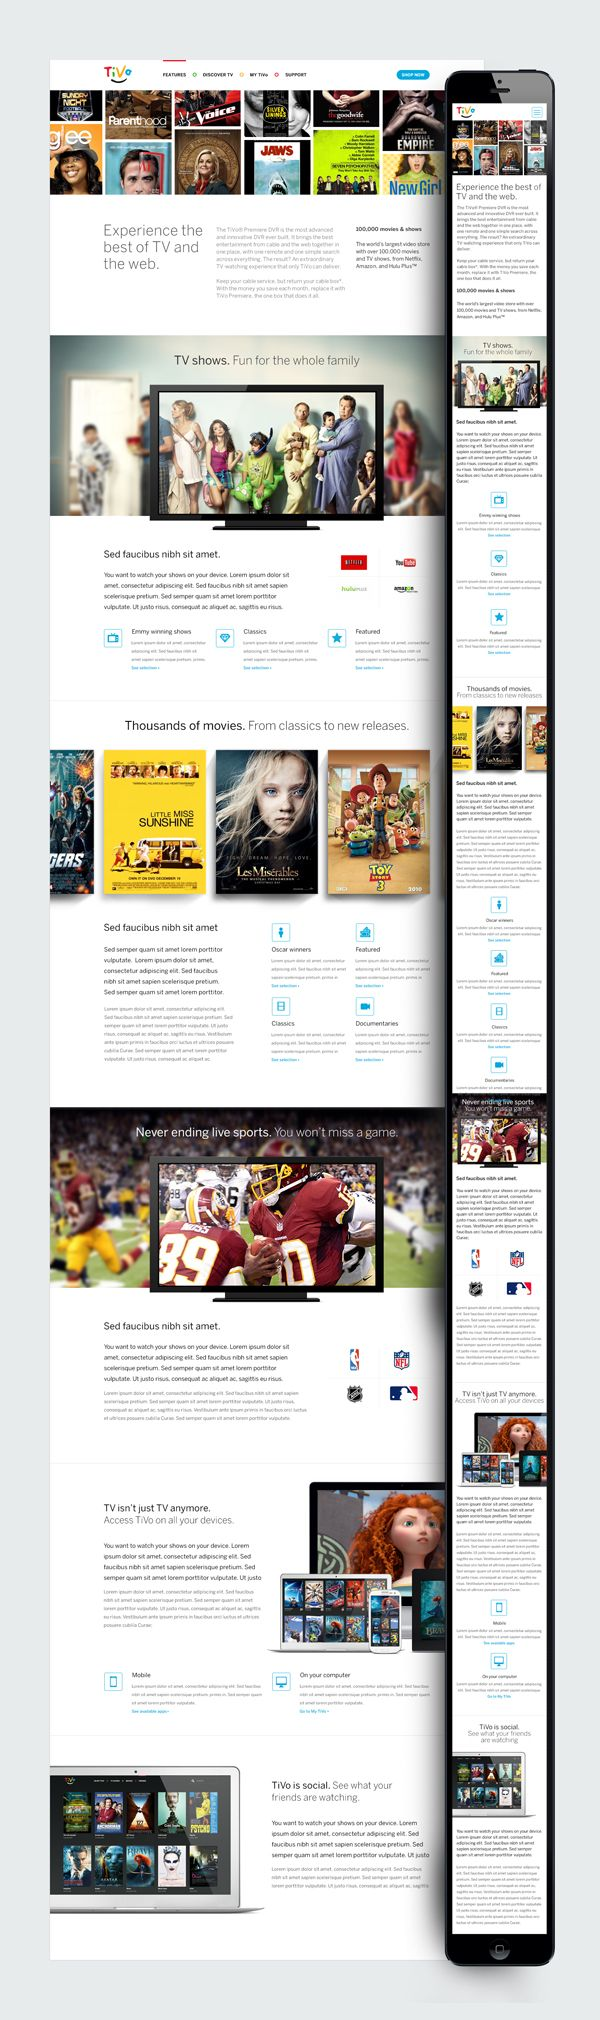 RWD preview *** A quick mock to show side by side desktop/mobile comparison of the TiVo responsive layout. by Haraldur Thorleifsson, via Dribbble